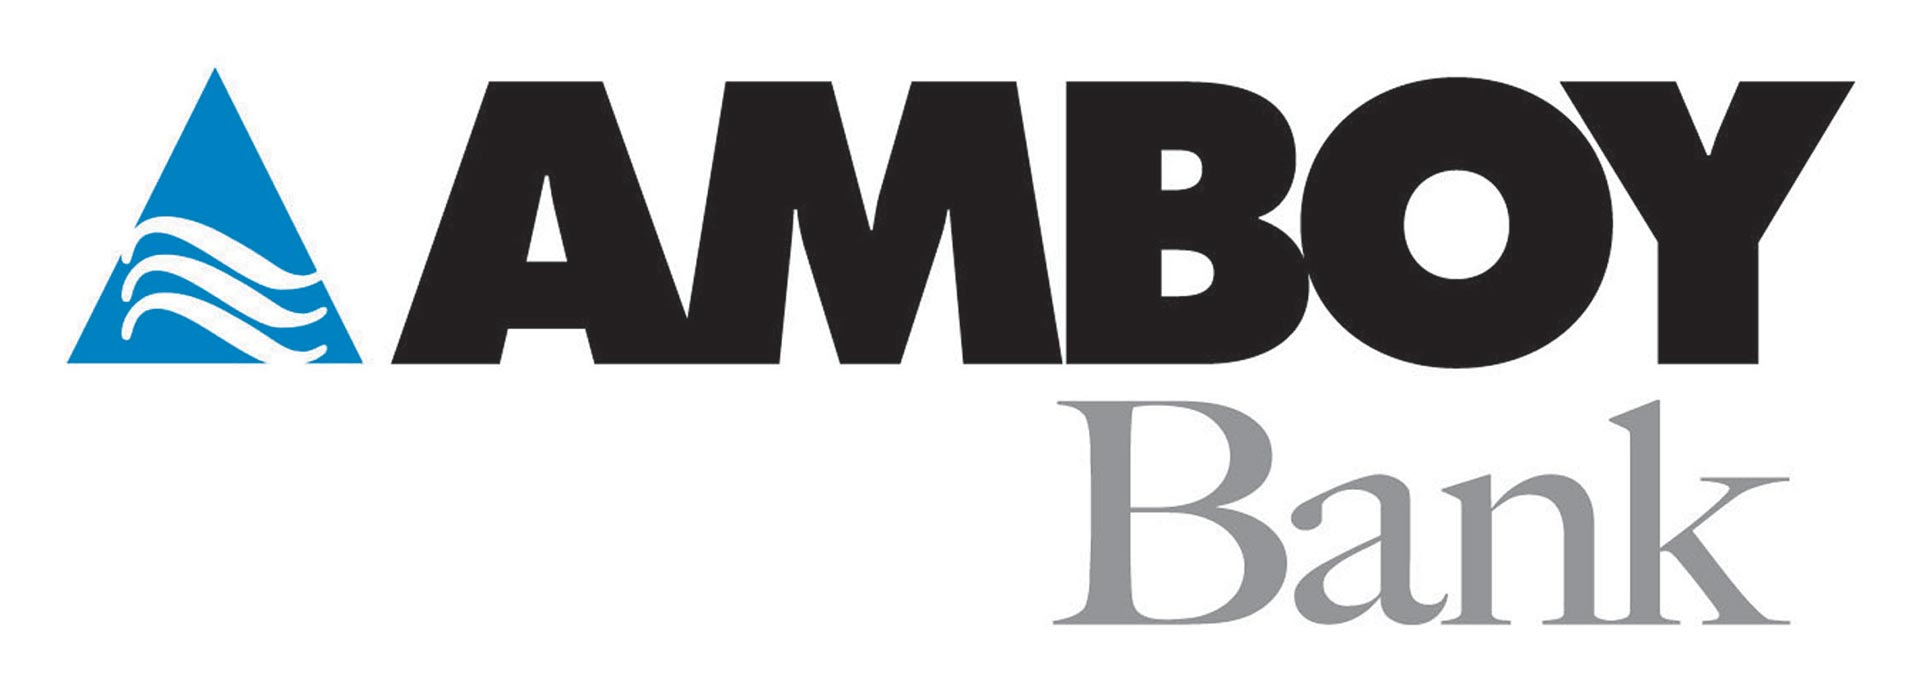 Amboy Bank Foundation